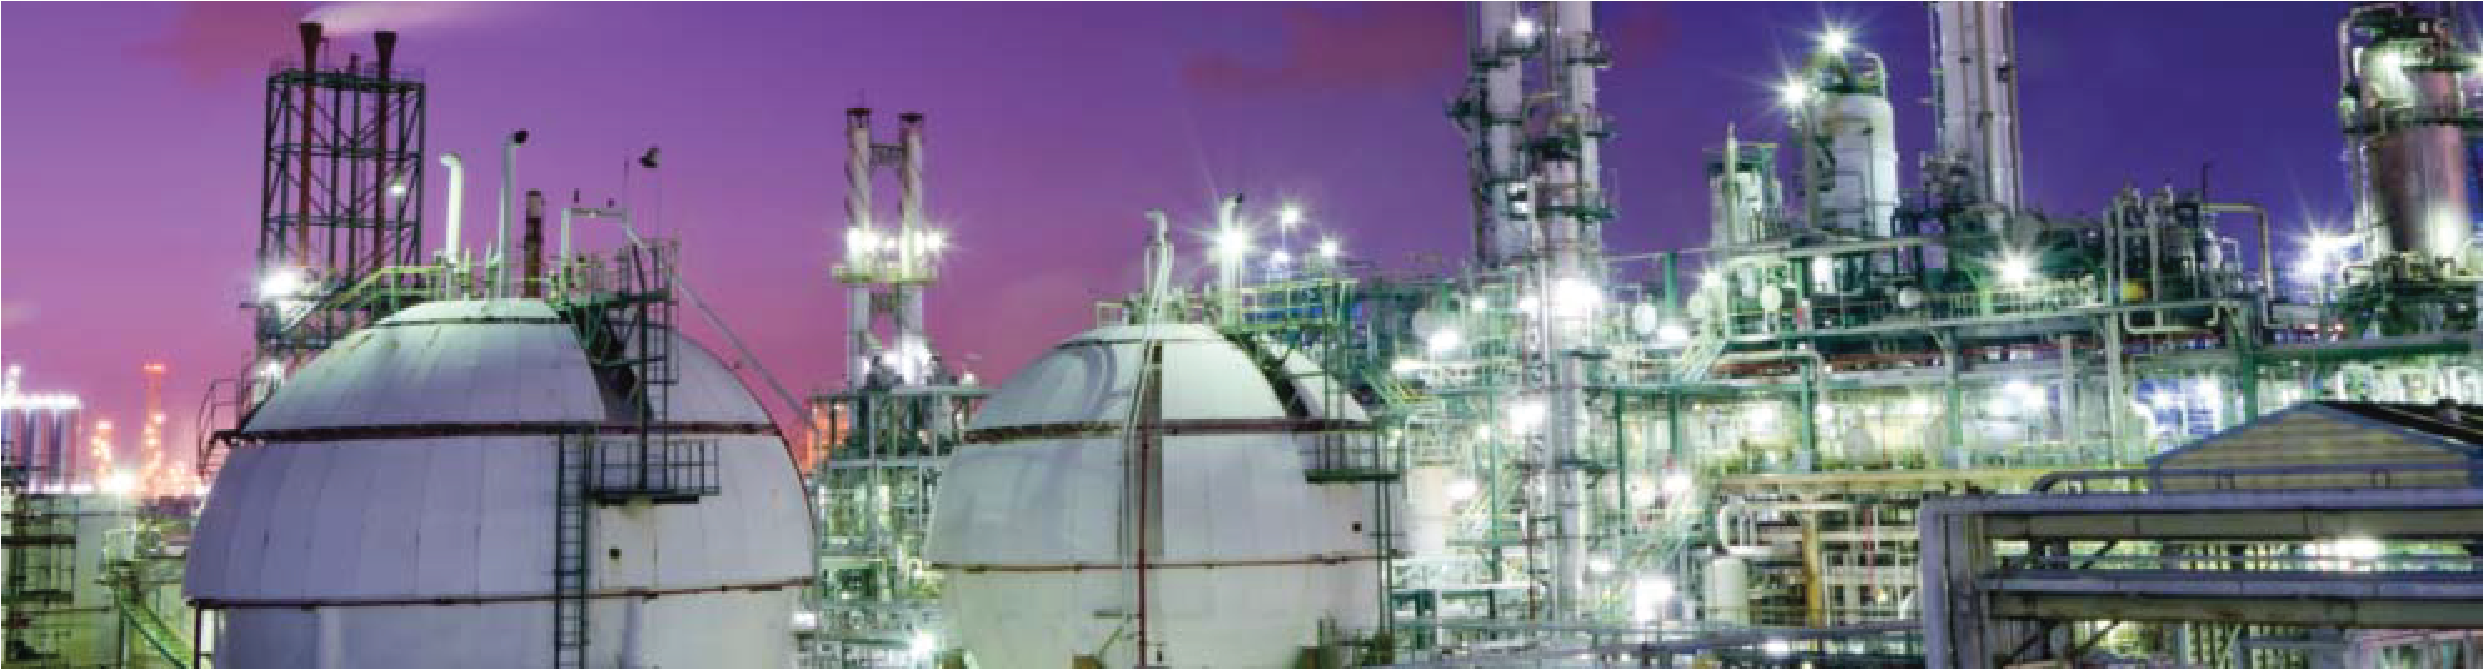 How to keep workers safe during refinery Plant maintenance